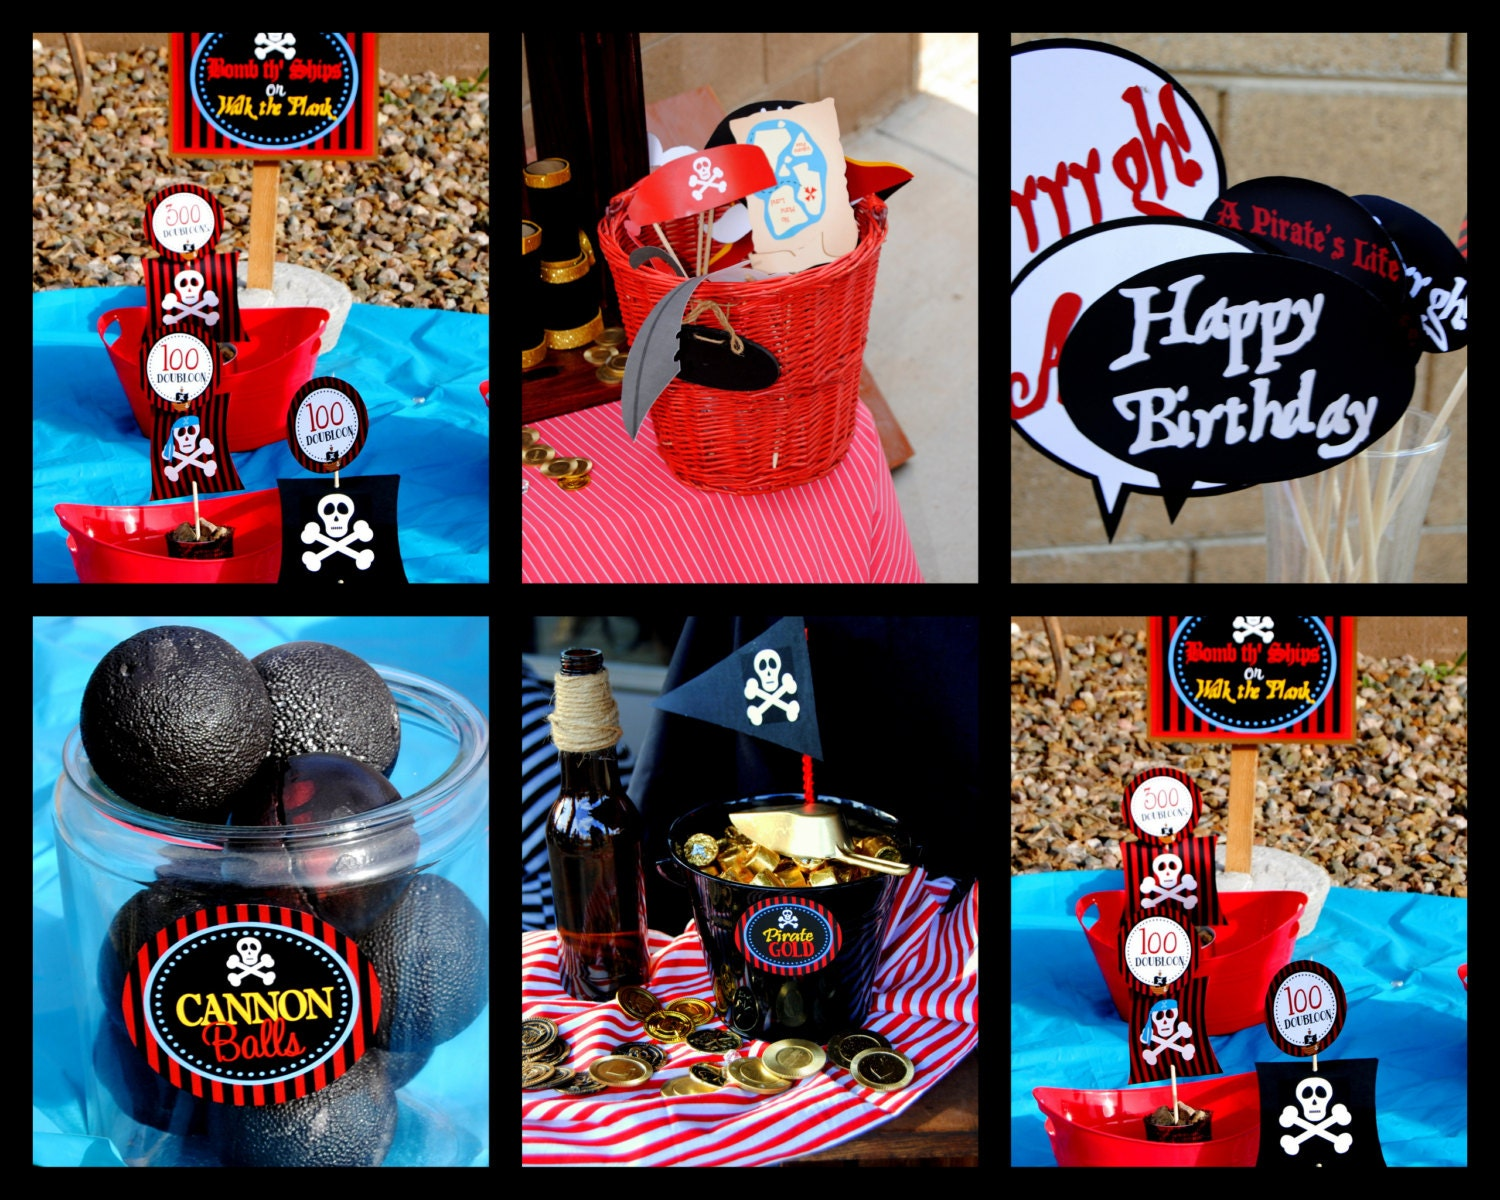 PIRATE Birthday Party GAMES Printable Signs by KROWNKREATIONS - photo#27